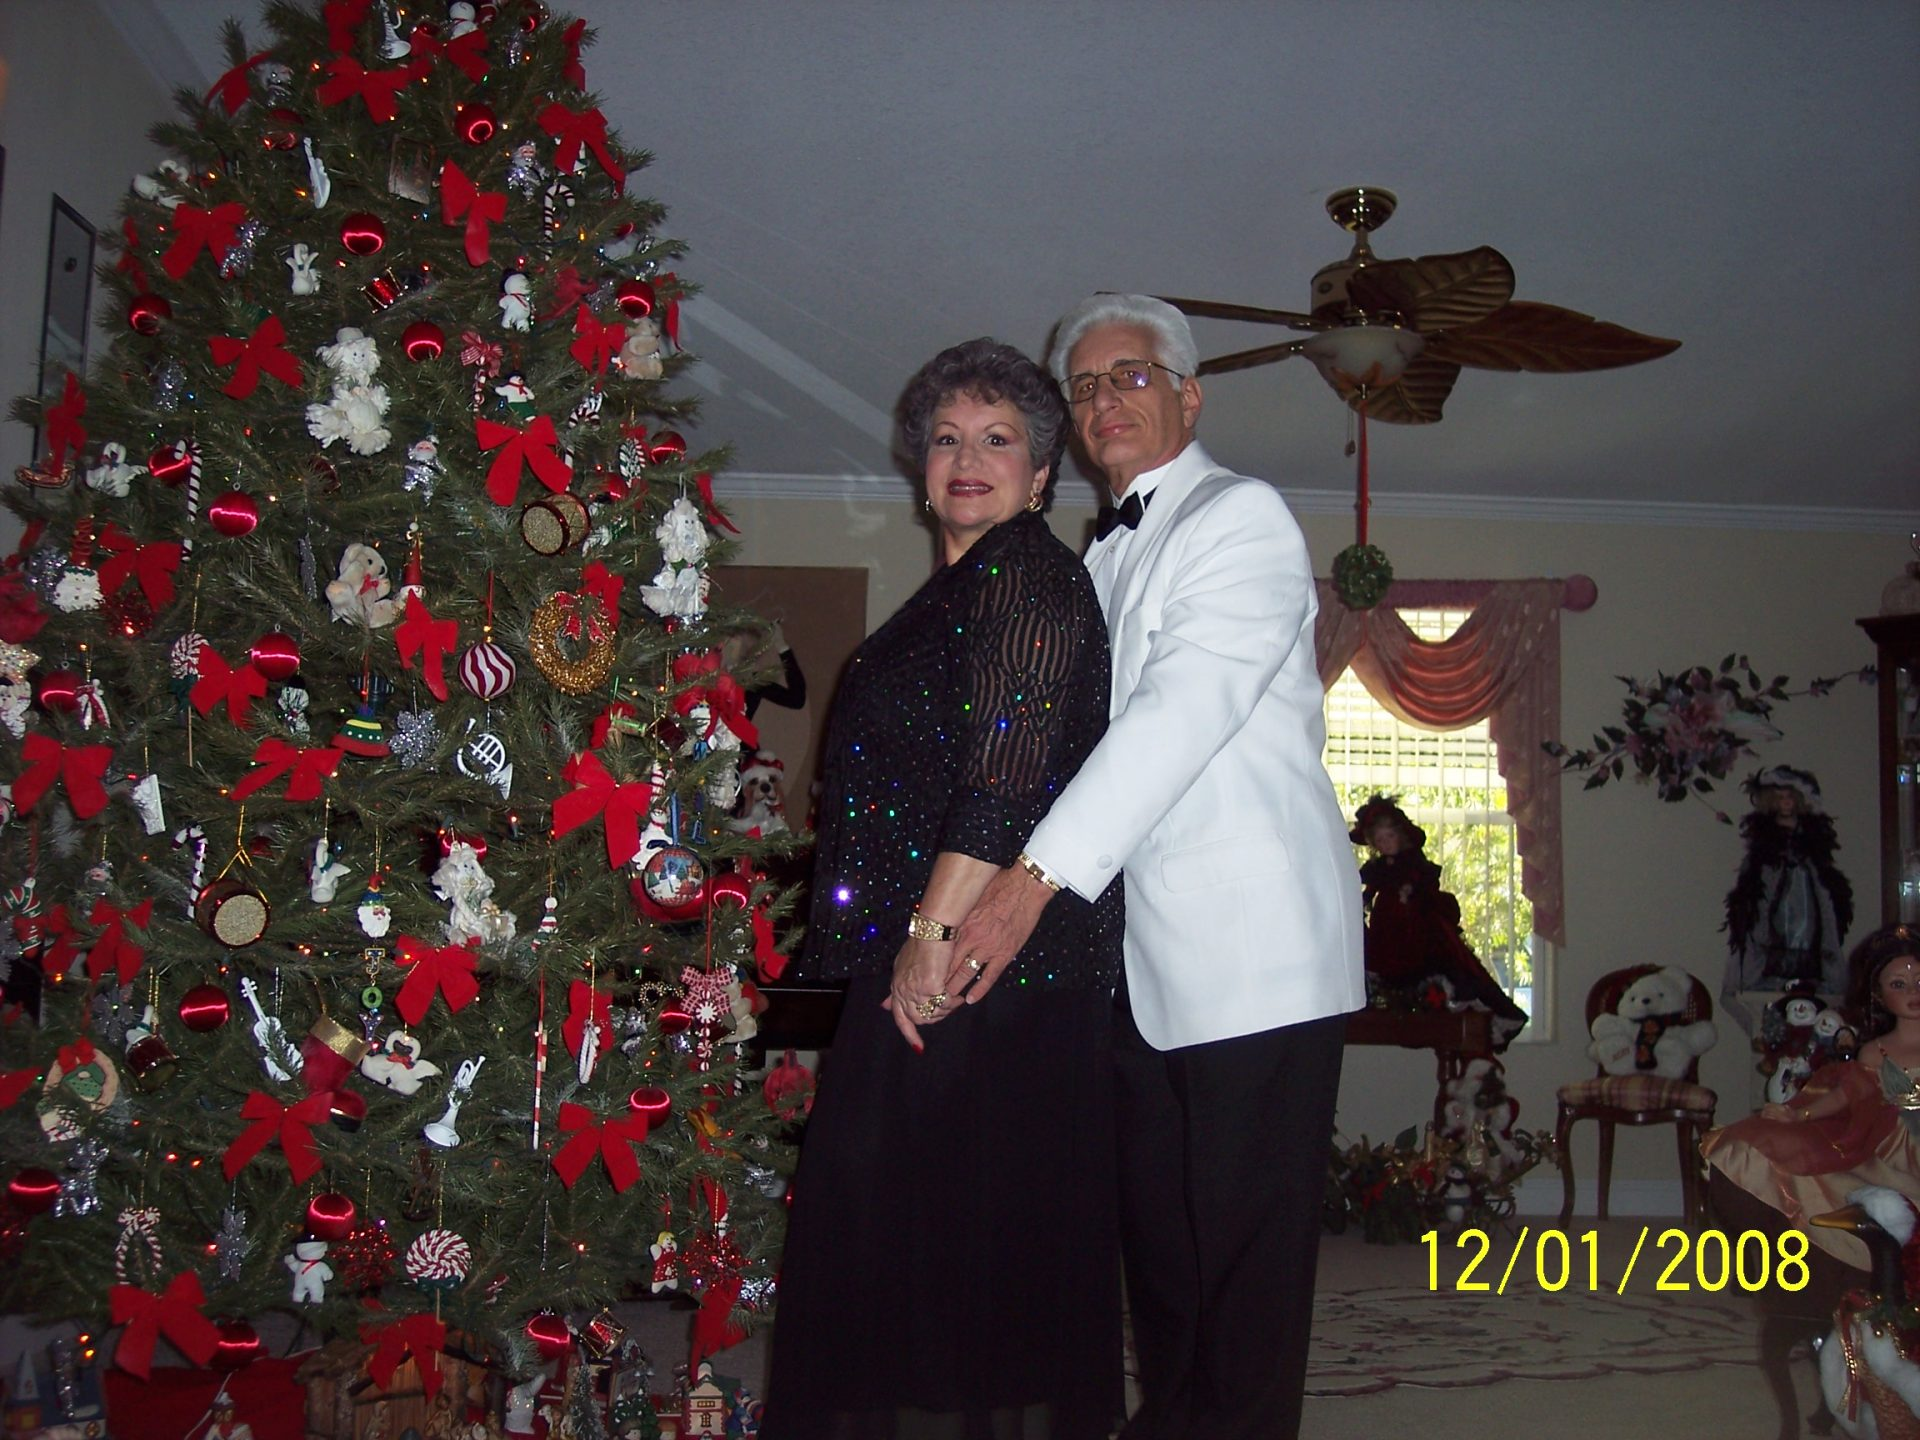 Another dancing event.....this one was at a round dancing ball.  Similar to ballroom but dancing to a cuer.